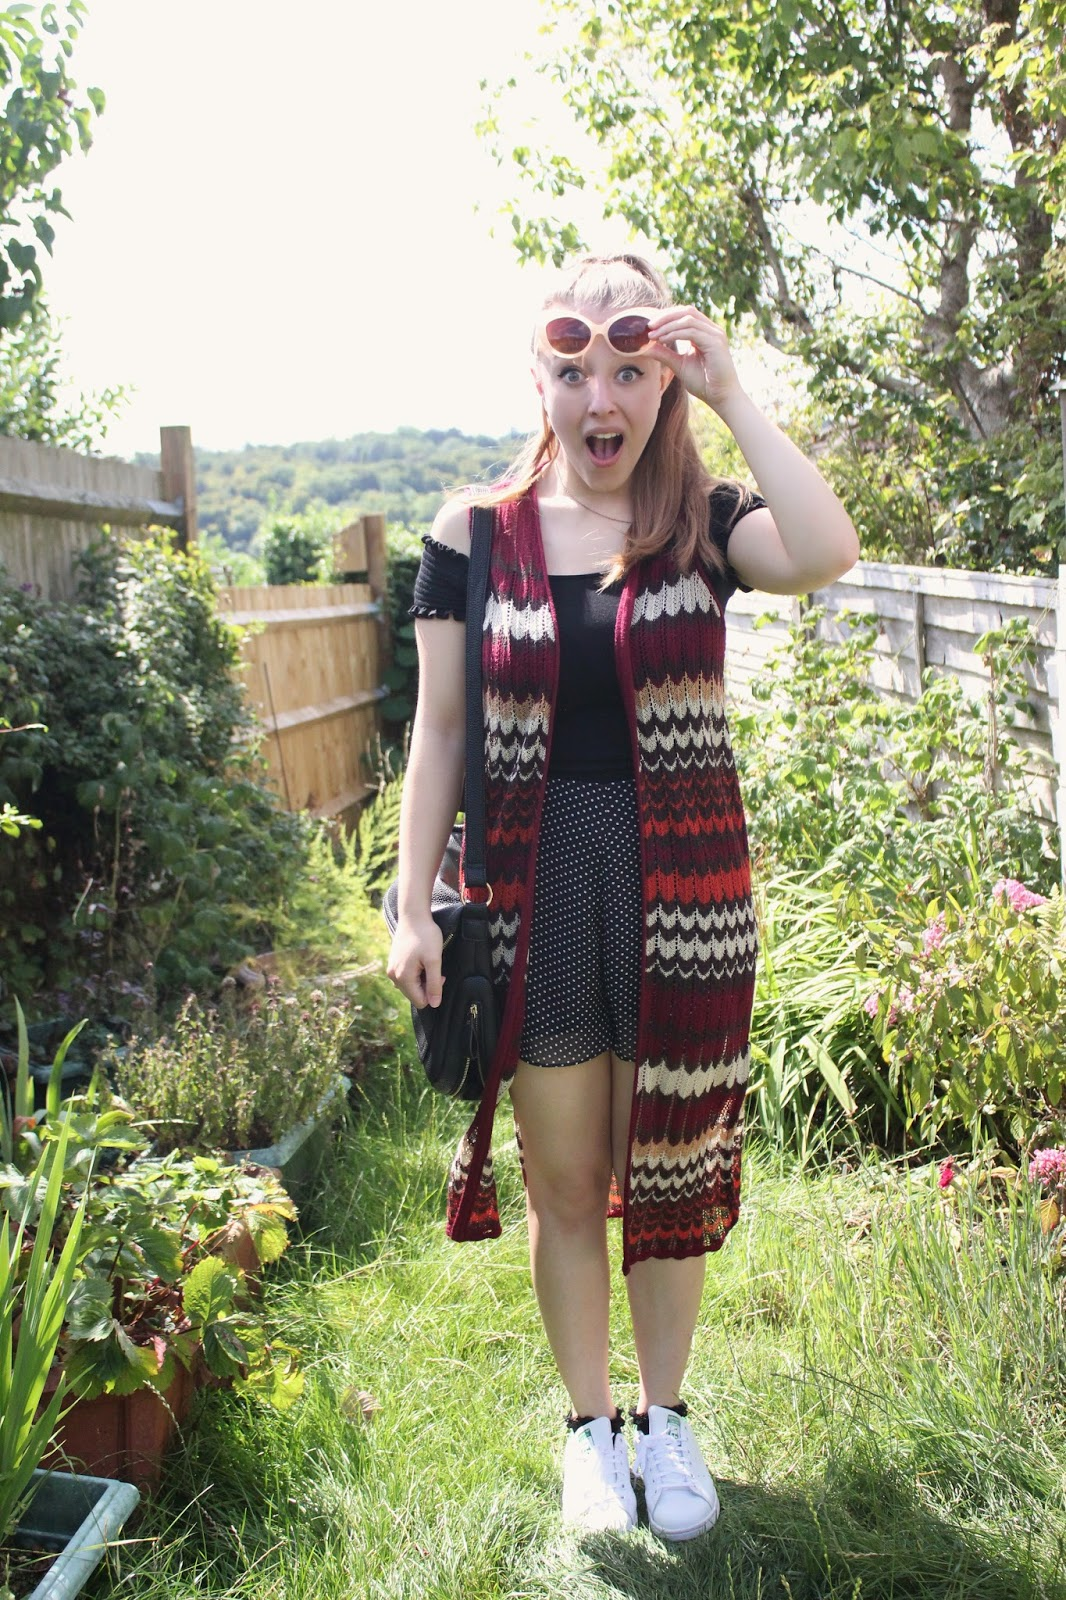 georgie-minter-brown-georgina-frequencies-fashion-blogger-ootd-outfit-clothes-new-look-sleeveless-cardigan-top-Morgan-shorts-Primark-Adidas-stan-smiths-pretty-little-thing-bag